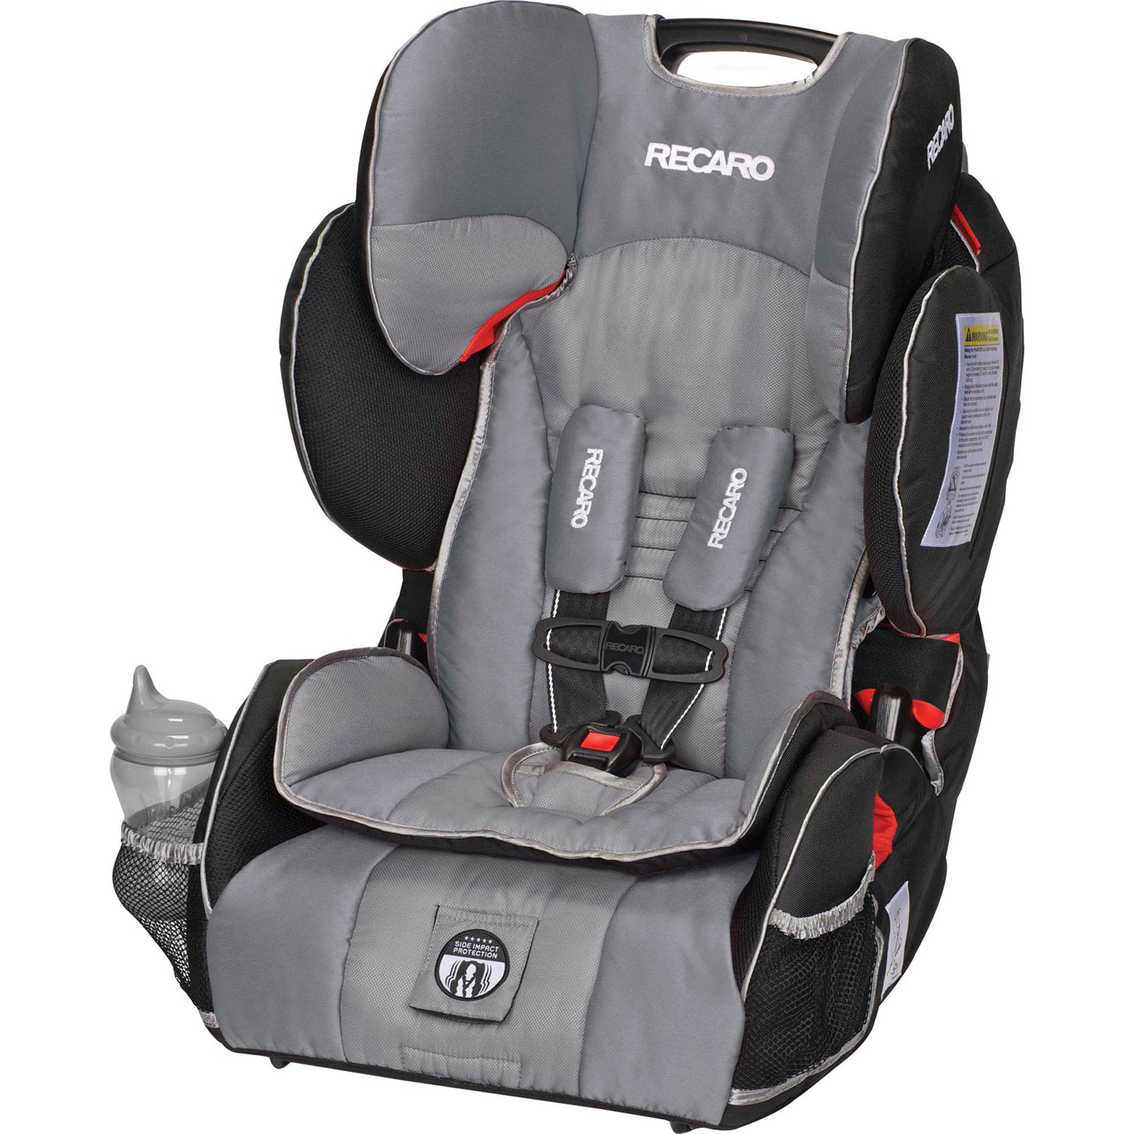 Shop high-rated baby car seats for every age. Baby Depot offers affordable infant car seats, boosters, and convertible car seats. Free Shipping available.